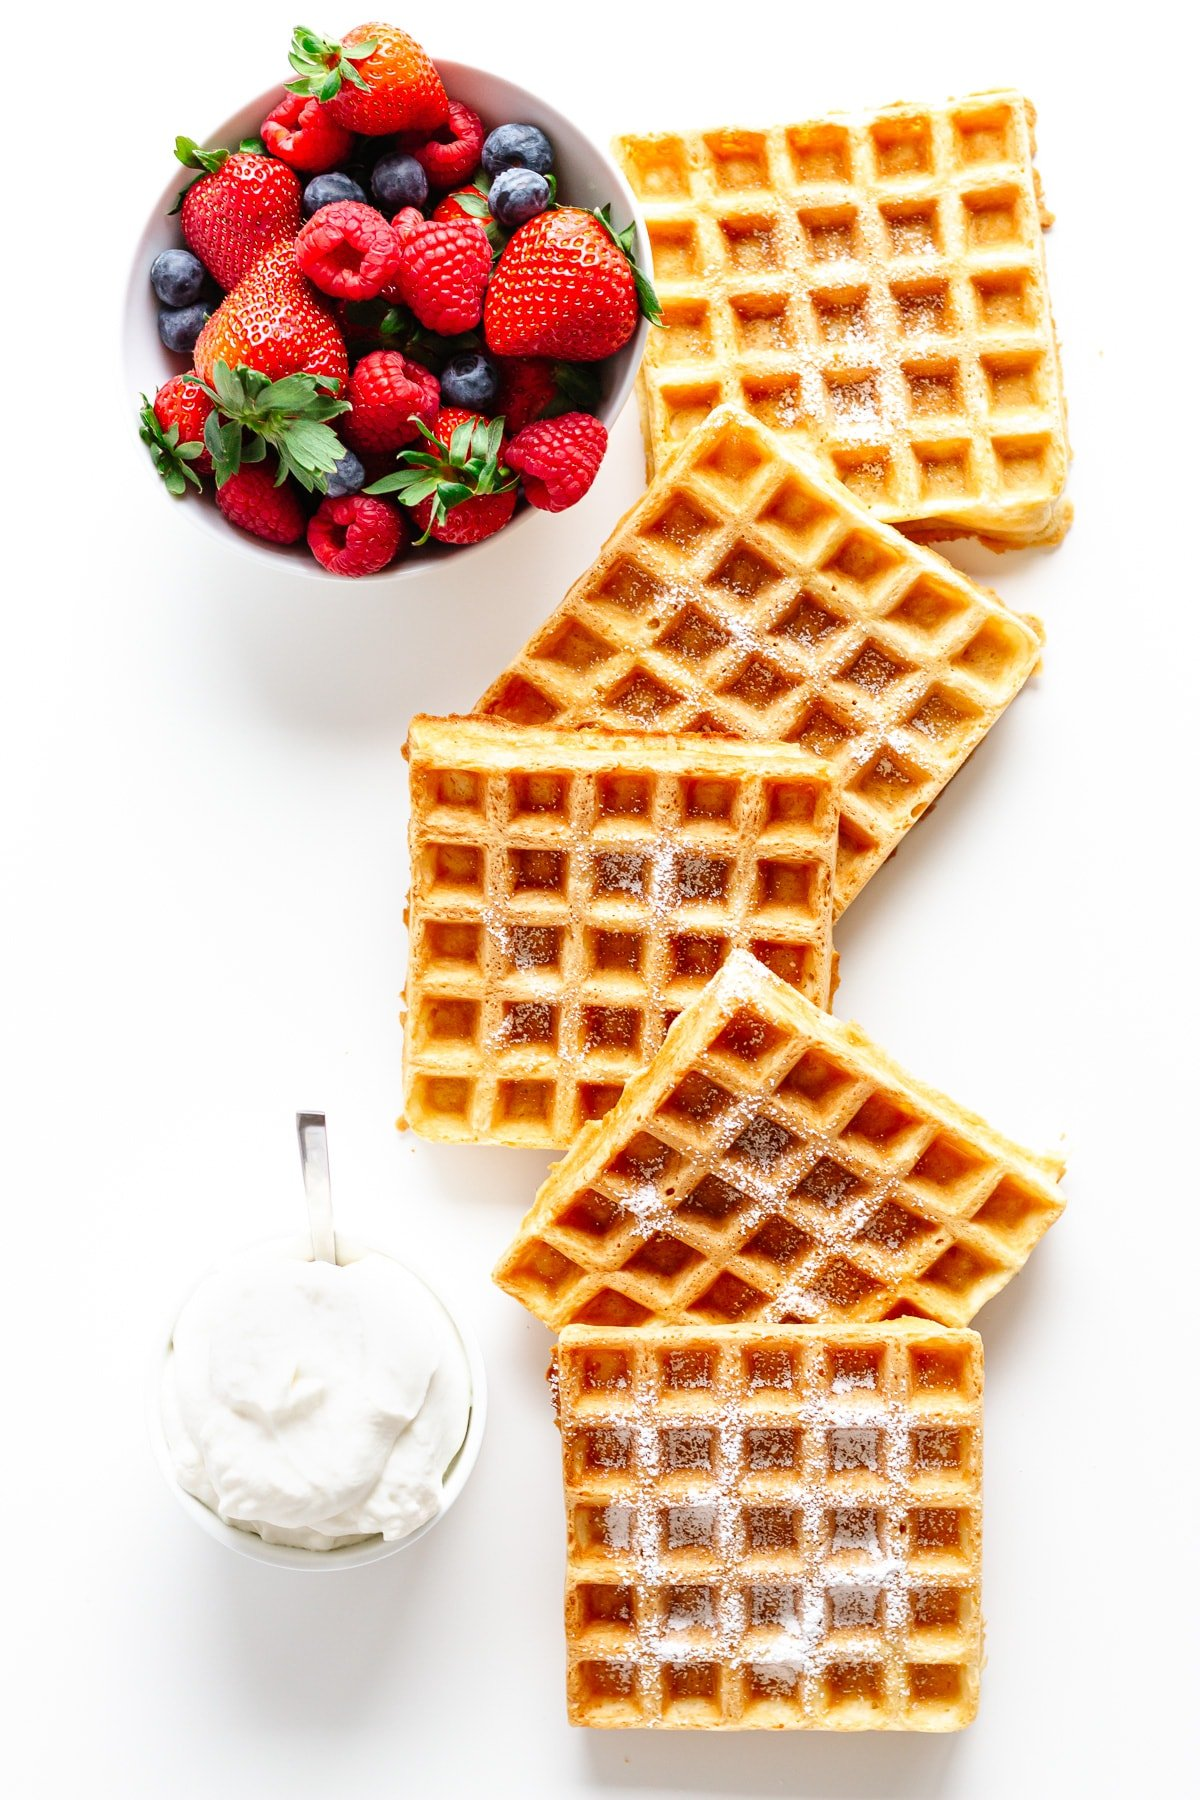 Overhead photo of square shaped waffles, bowl of berries and whipped cream on a white background.